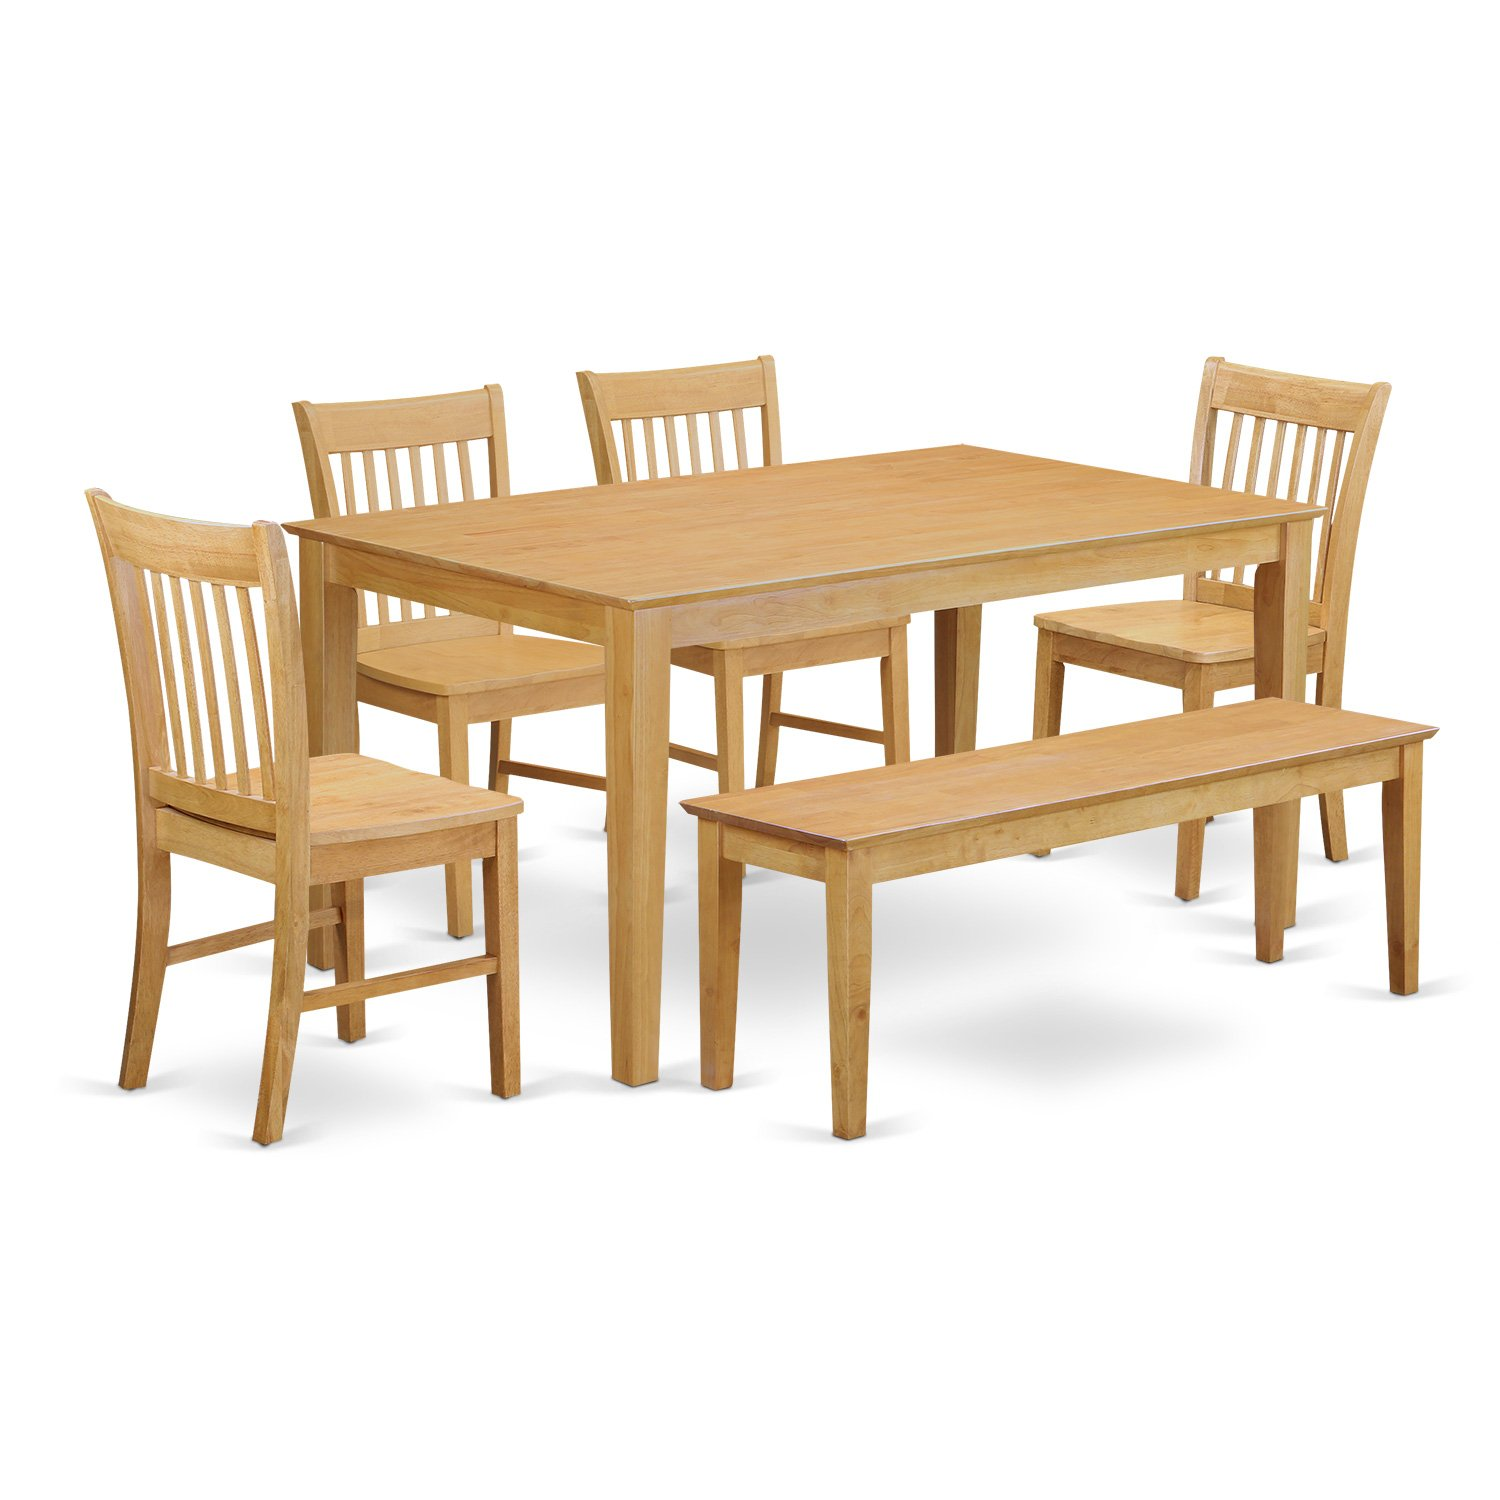 CANO6-OAK-W 6-Pc Dining room set with bench- Dining Table and 4 Chairs and Bench